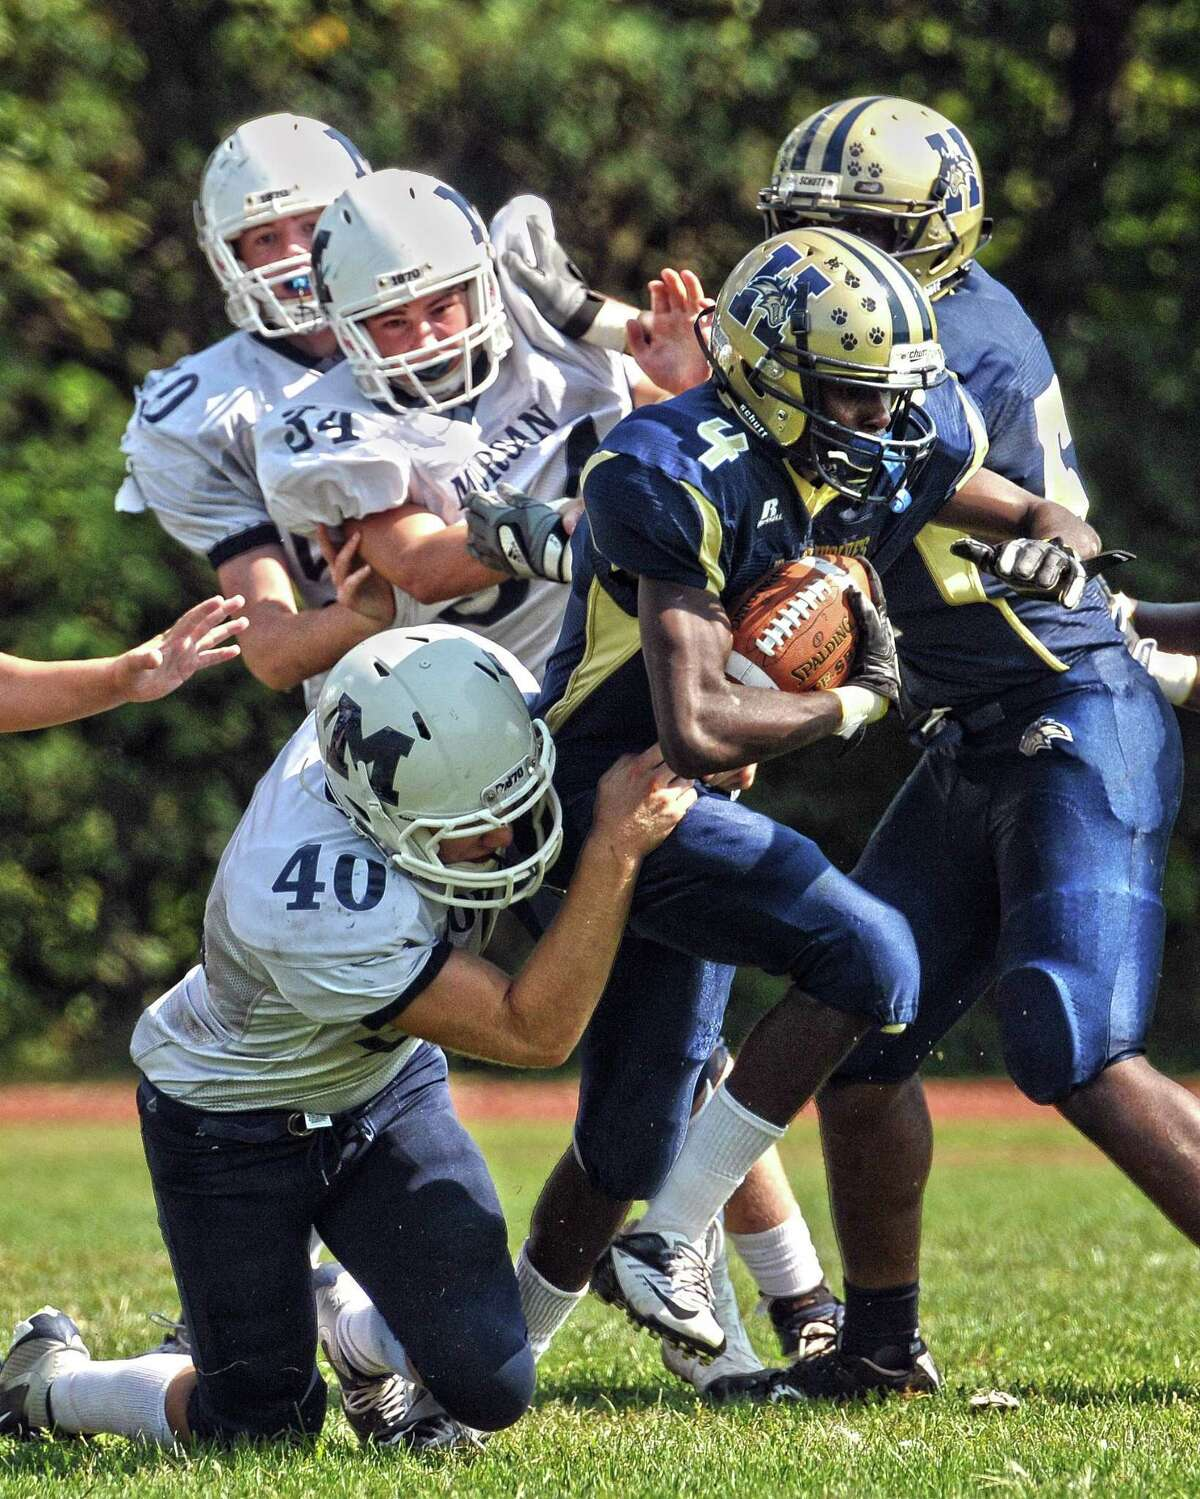 Morgan's Nick Sneider makes a tackle earlier this season against Hyde. Morgan closed its season with a win over Old Saybrook/Westbrook. Photo Peter Casolino/New Haven Register